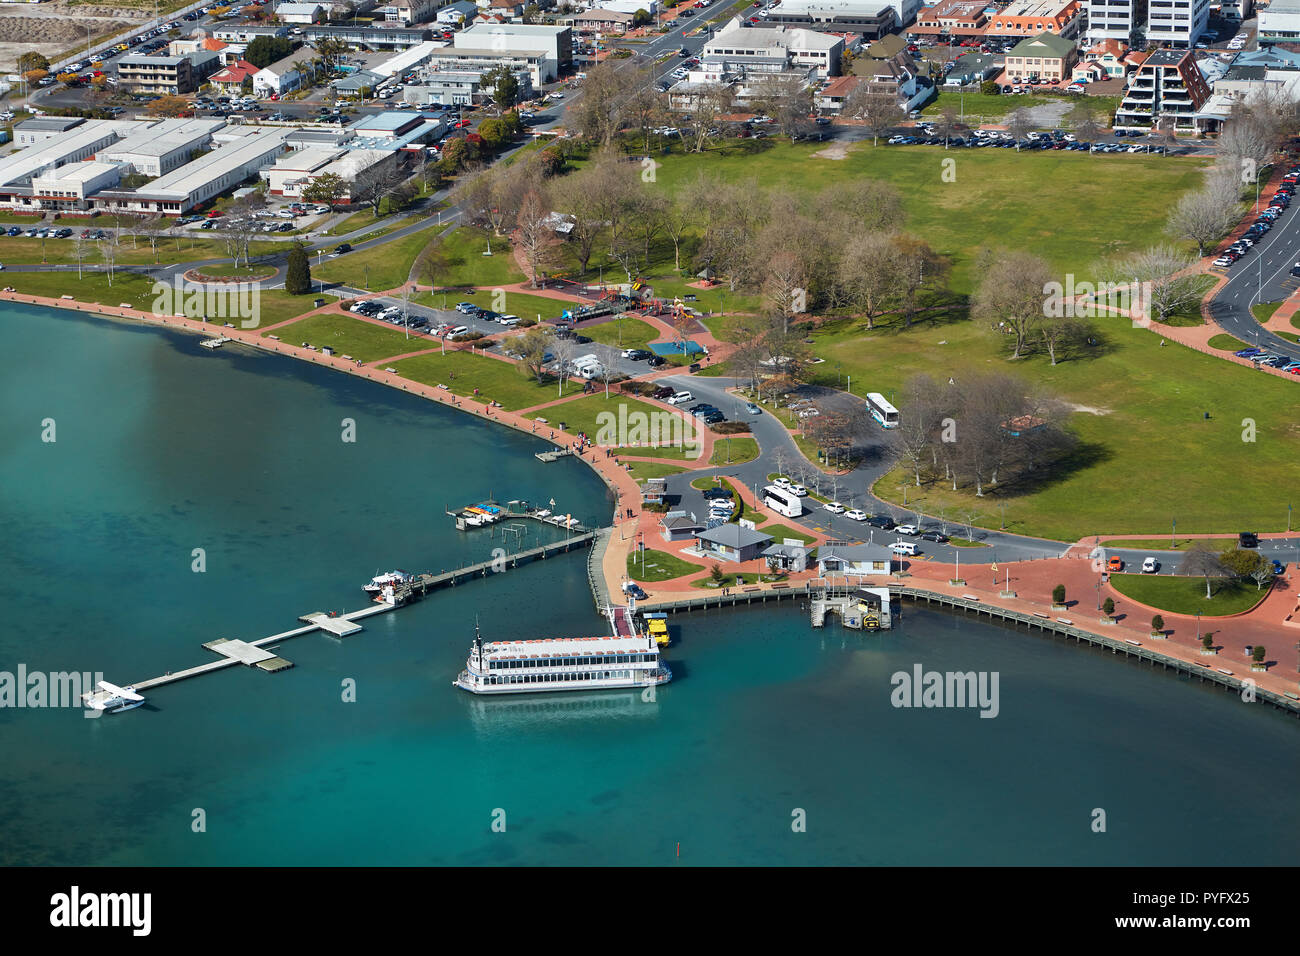 Lakeland Queen paddle steamer, and Rotorua Lakefront Reserve, Rotorua, North Island, New Zealand - aerial - Stock Image